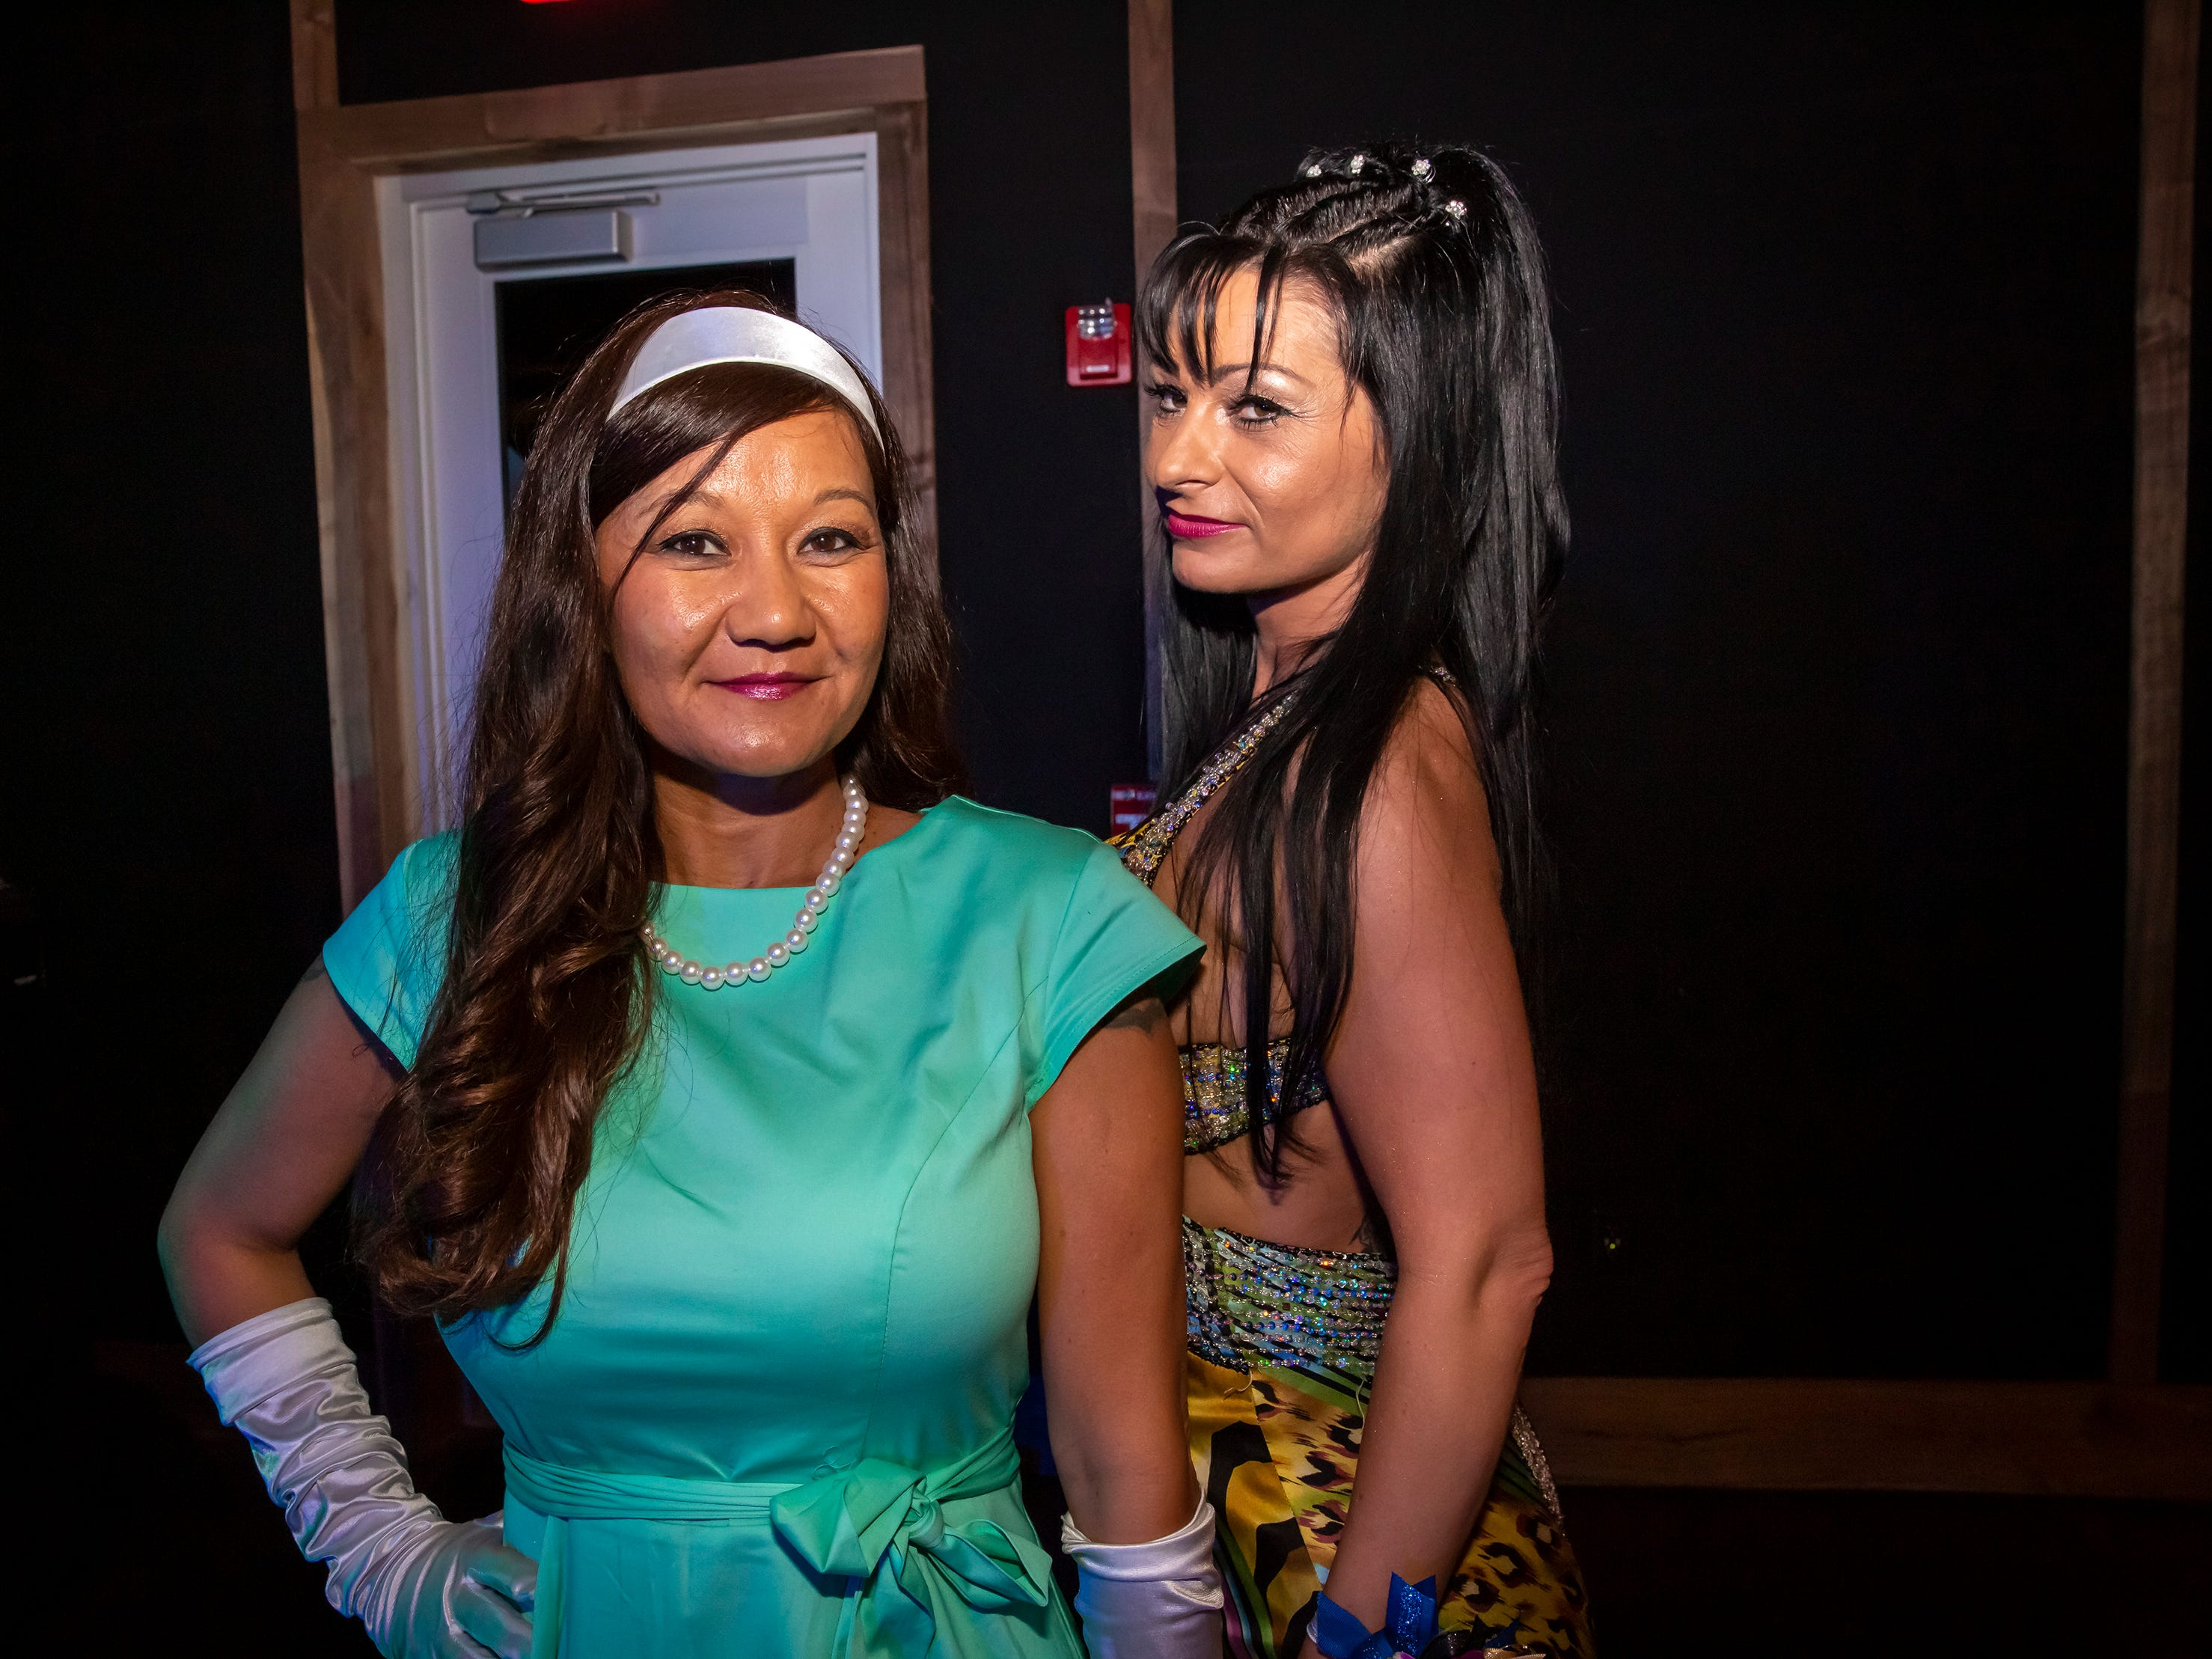 Chistine Perry and Brigitta Toth at the Adult Prom held at Hop Springs to benefit Kymari House, Saturday, May 11, 2019.